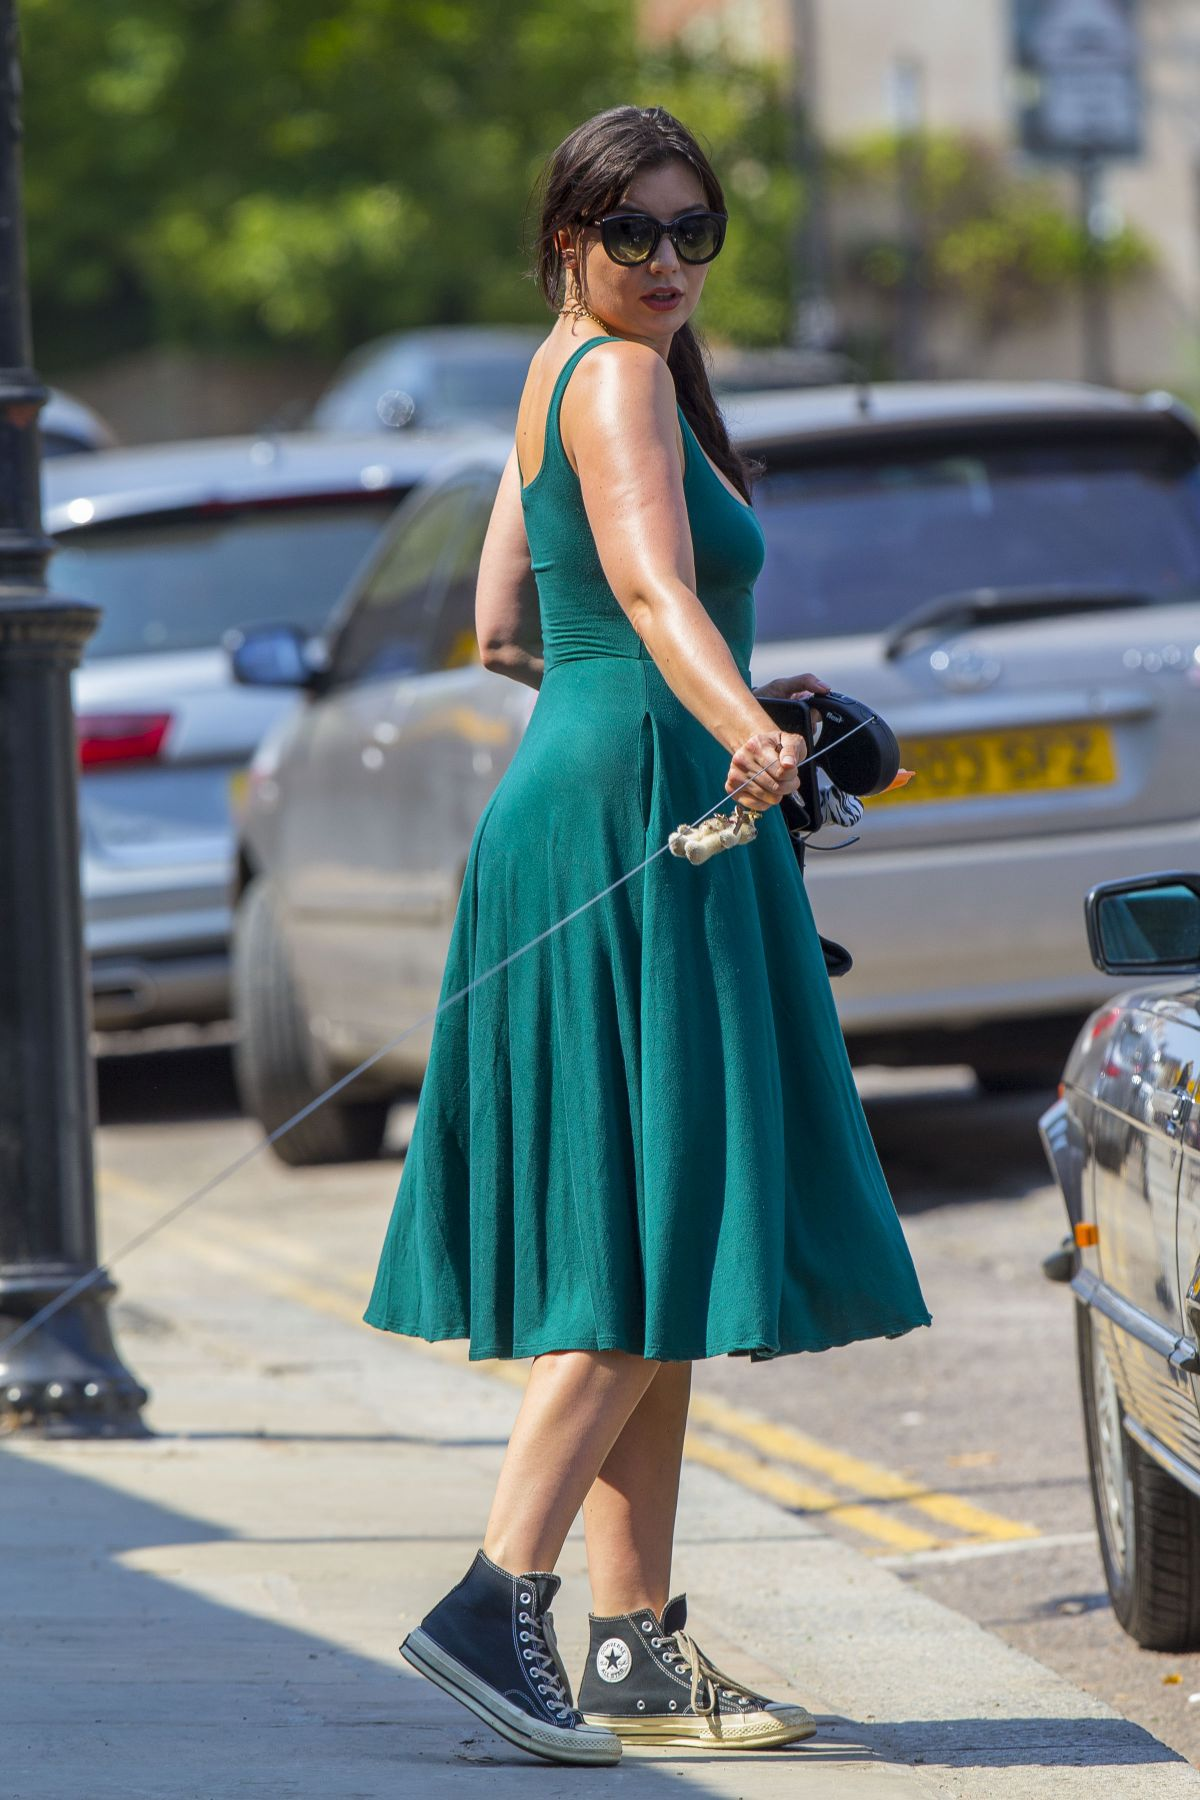 Daisy Lowe Green Dress Out With Her Dog London